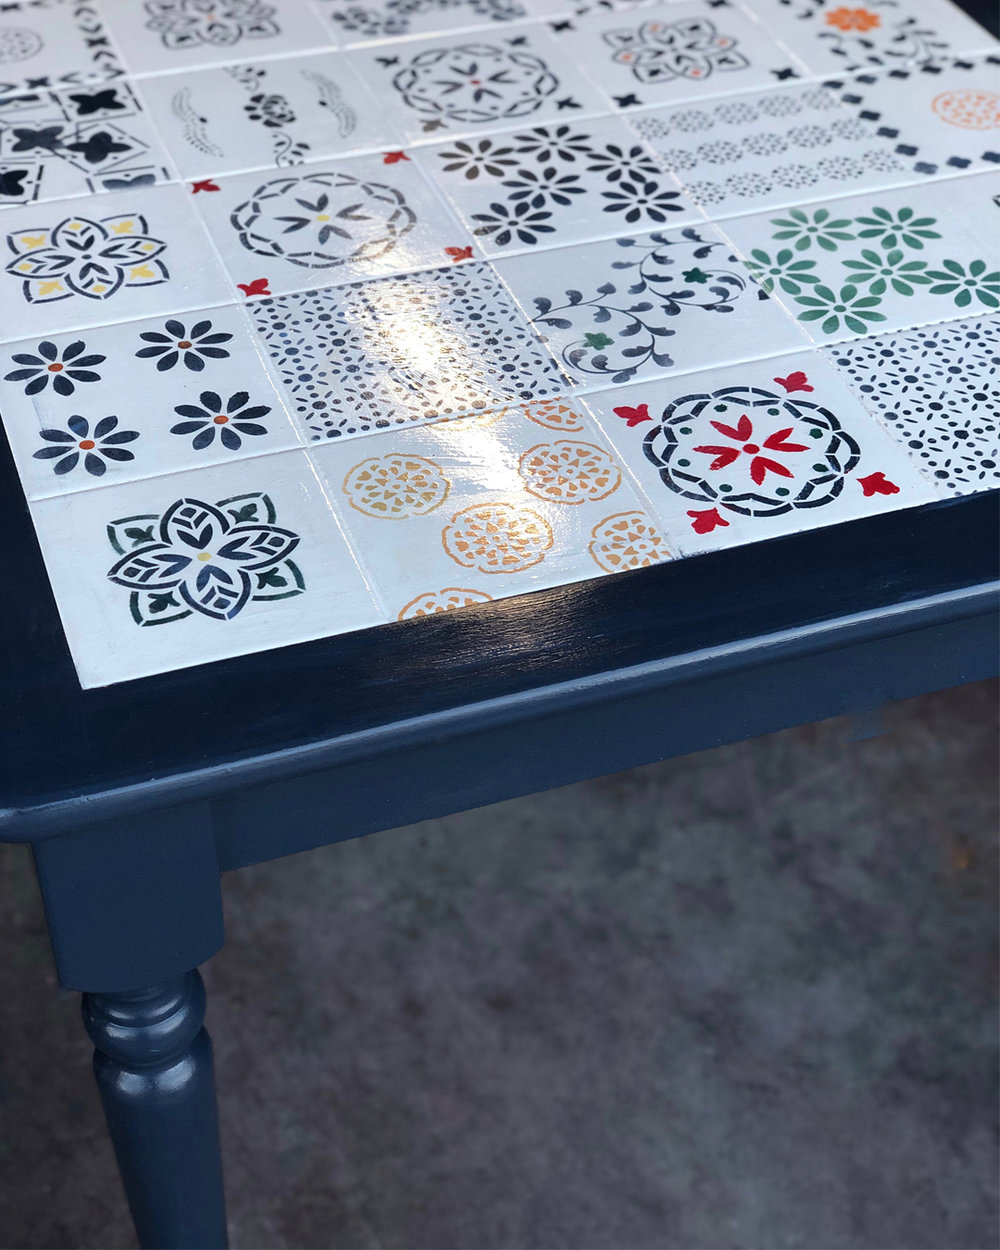 table makeover, DIY makeover, DIY furniture makeover, DIY at home project, furniture makeover project, Dated Tile Table Makeover, furniture makeover project, before and after furniture makeover, BB Frosch, chalk paint DIY, chalk paint furniture makeover project, DIY furniture makeover inspiration, DIY home weekend project